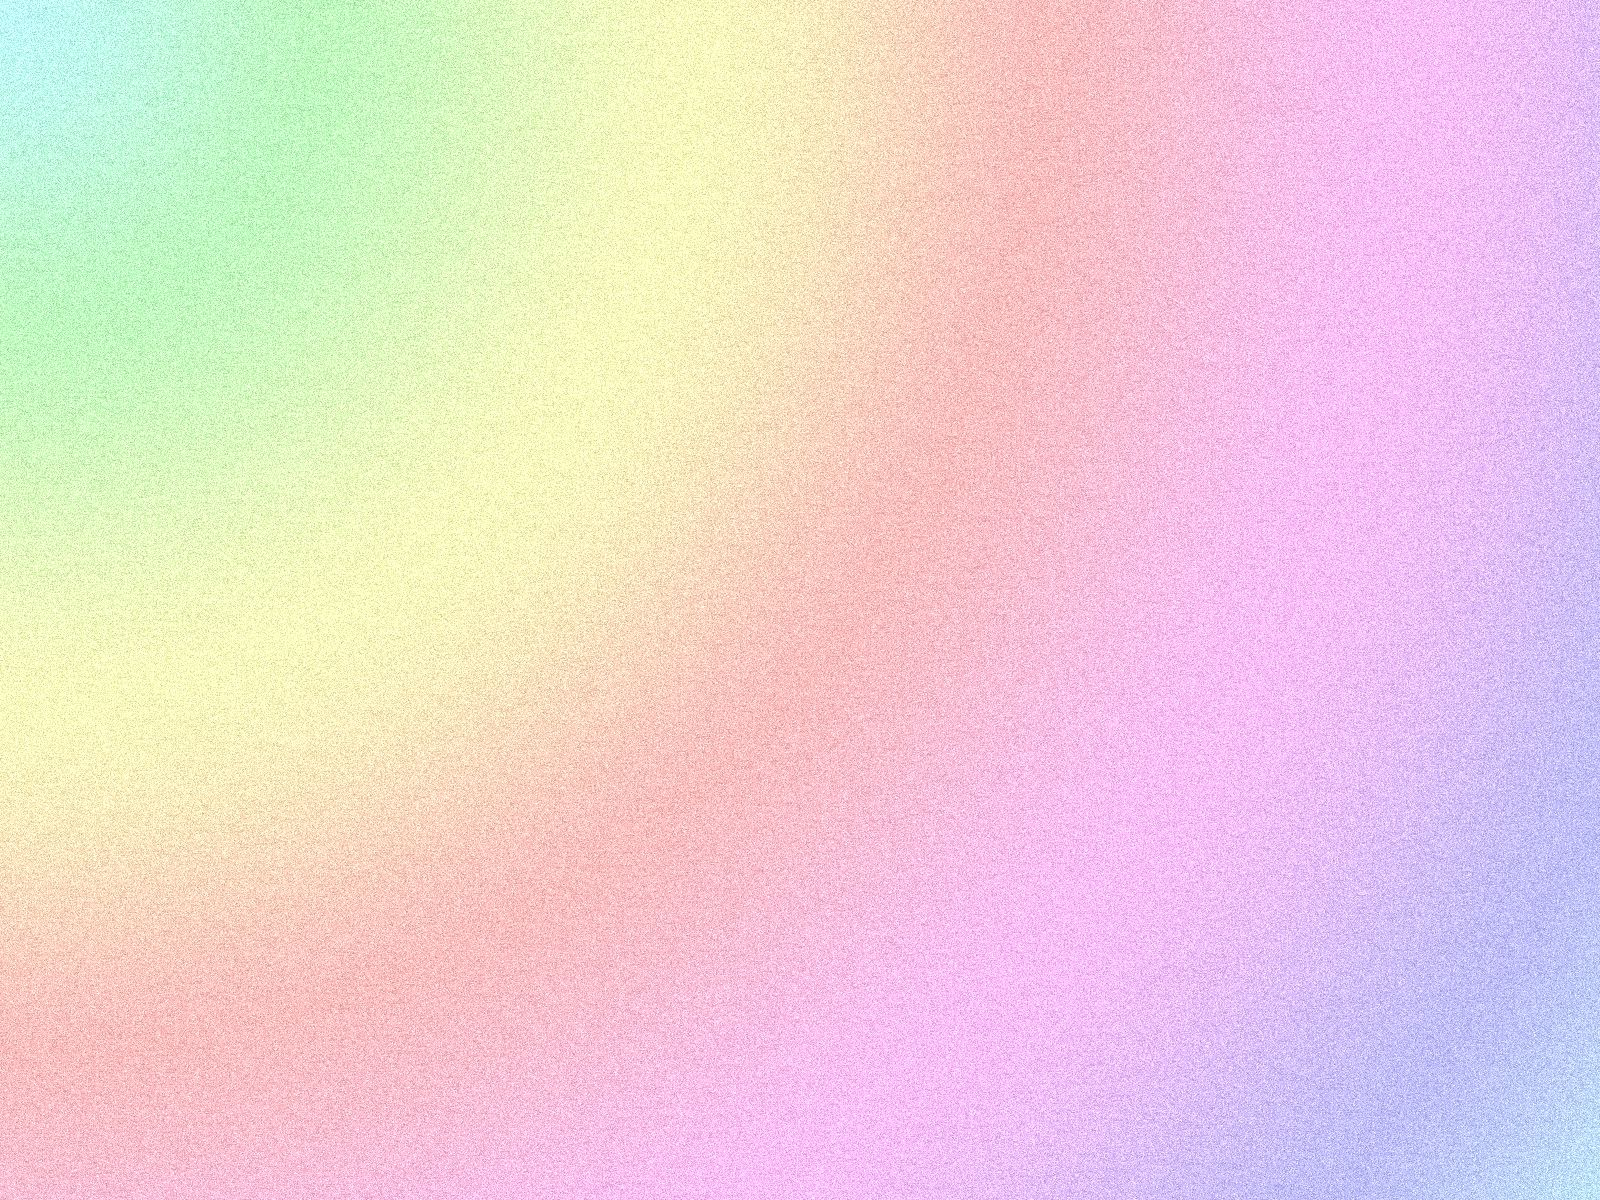 Rainbow iphone wallpaper tumblr - Hello Spring Desktop Backgrounds Pinterest Hello Spring And Spring